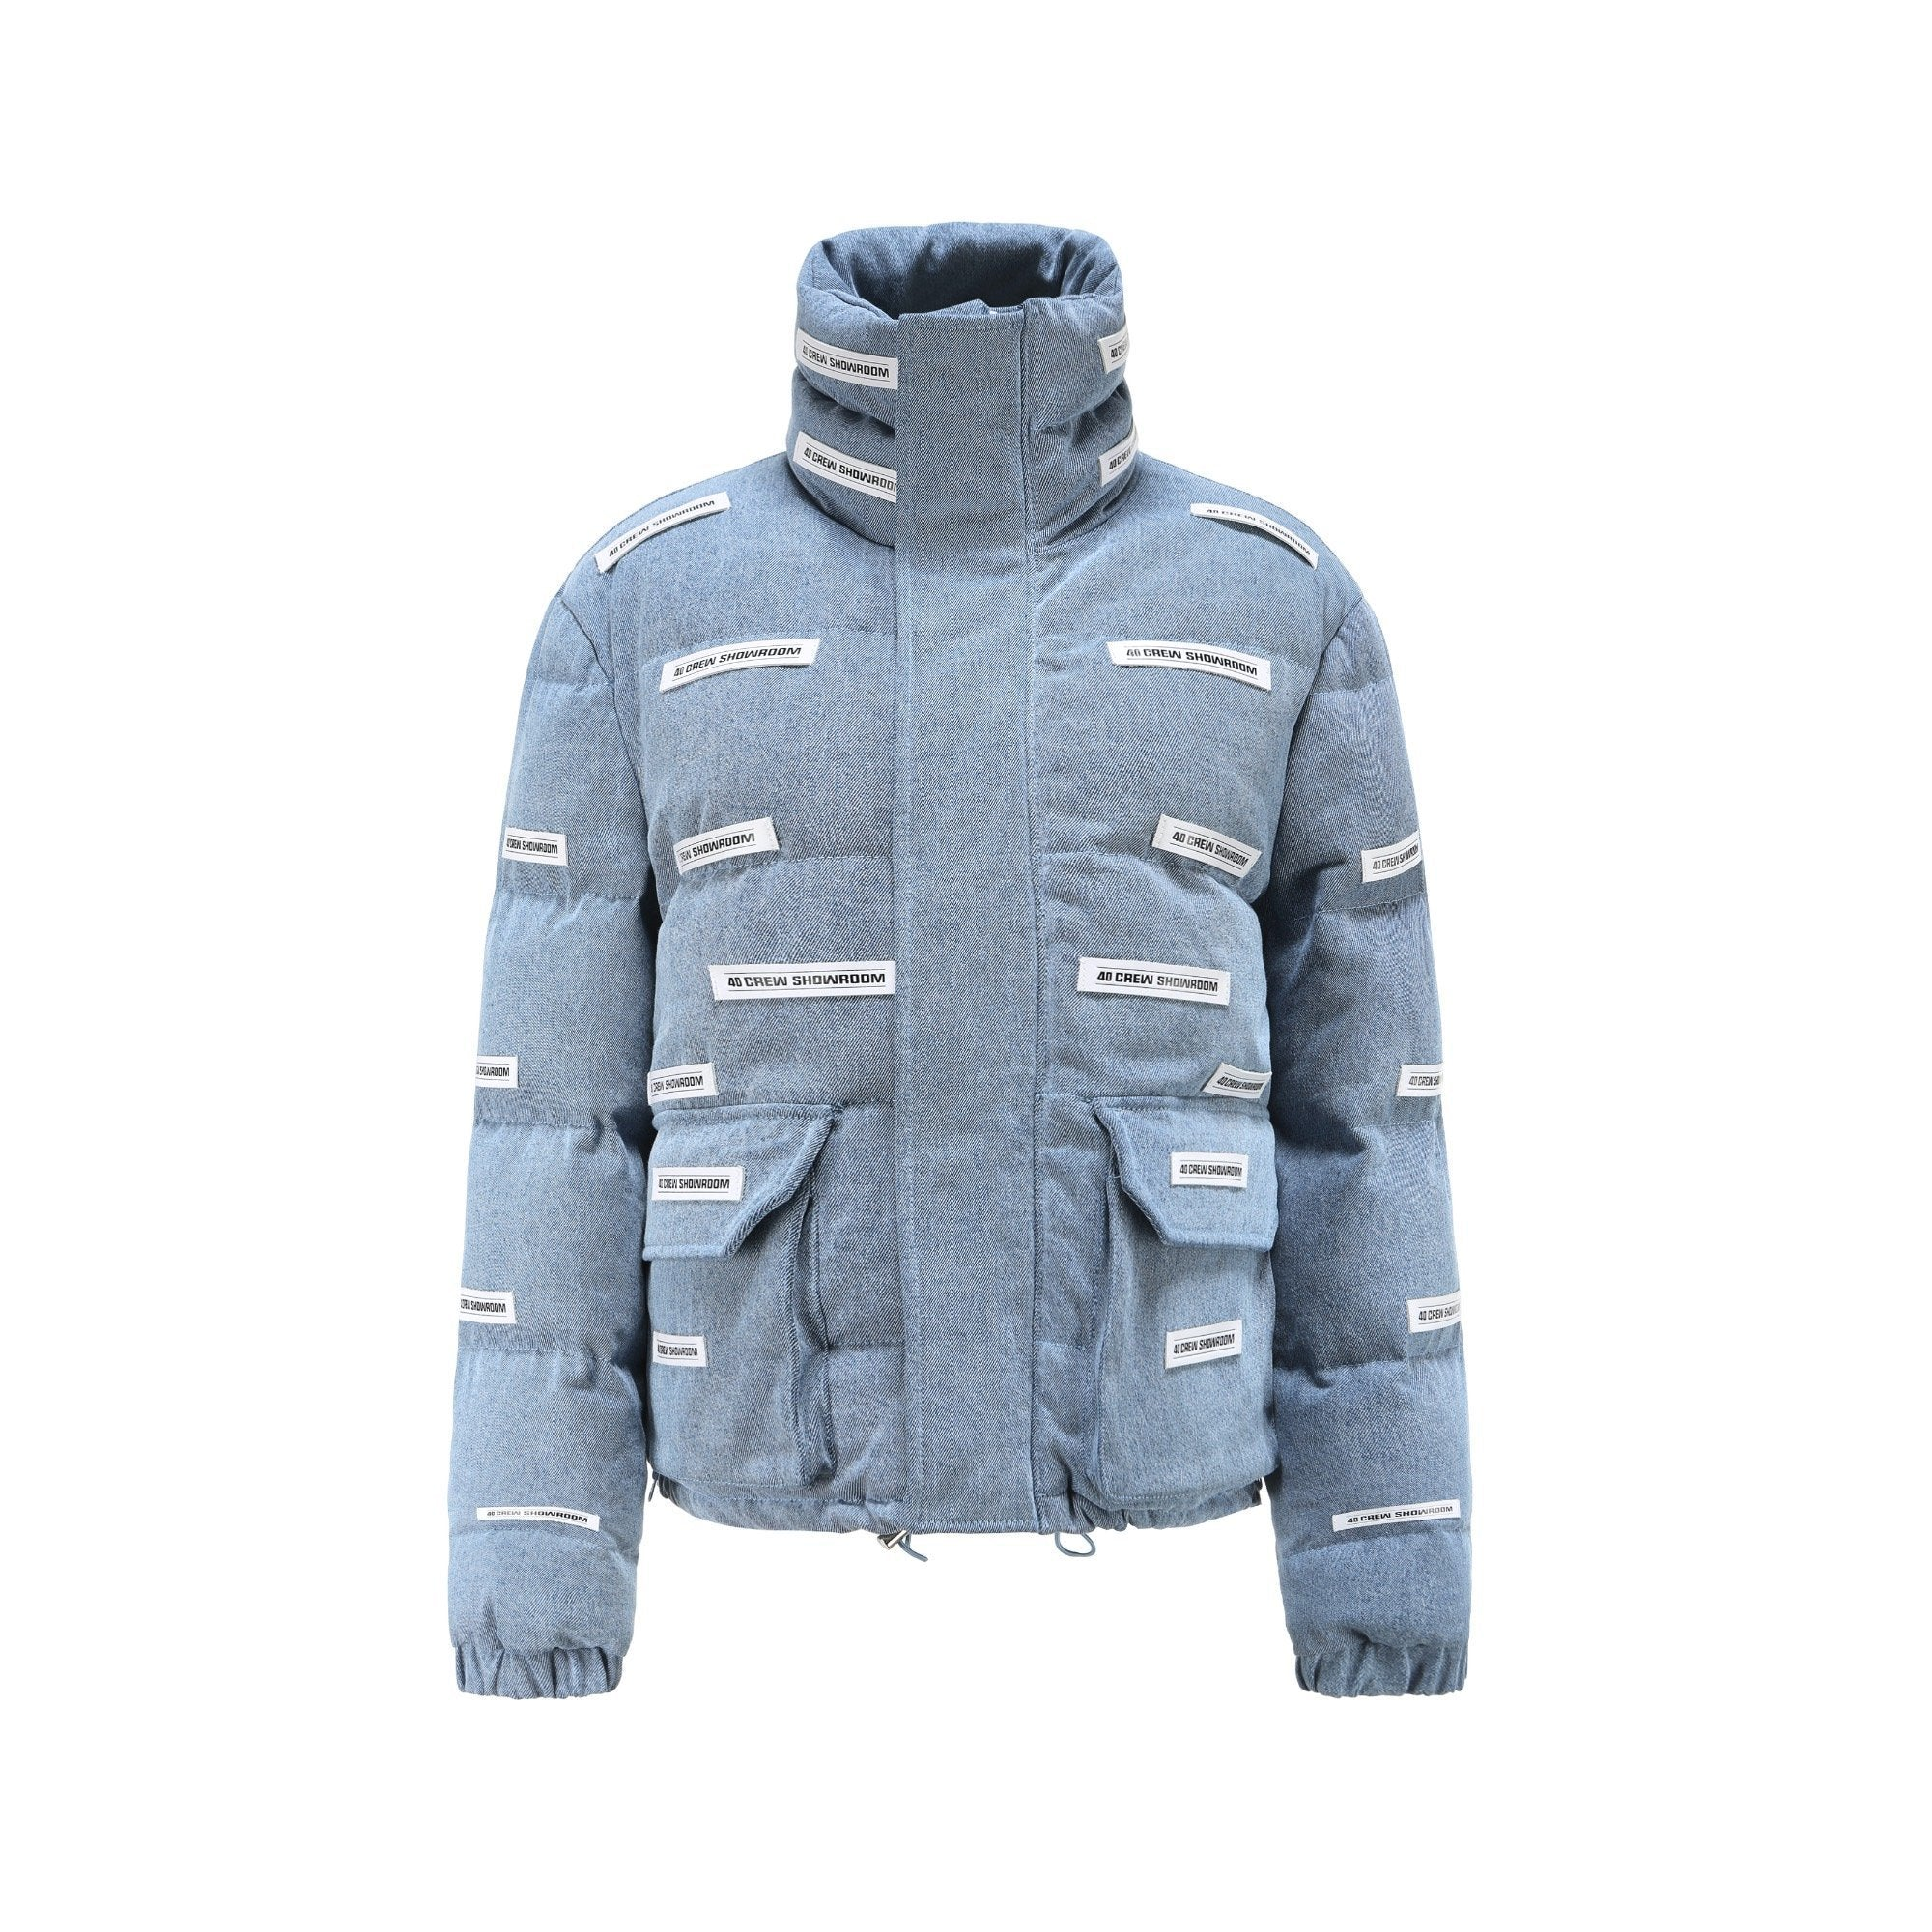 40 CREW Blue Lead Denim Puff Jacket | MADA IN CHINA